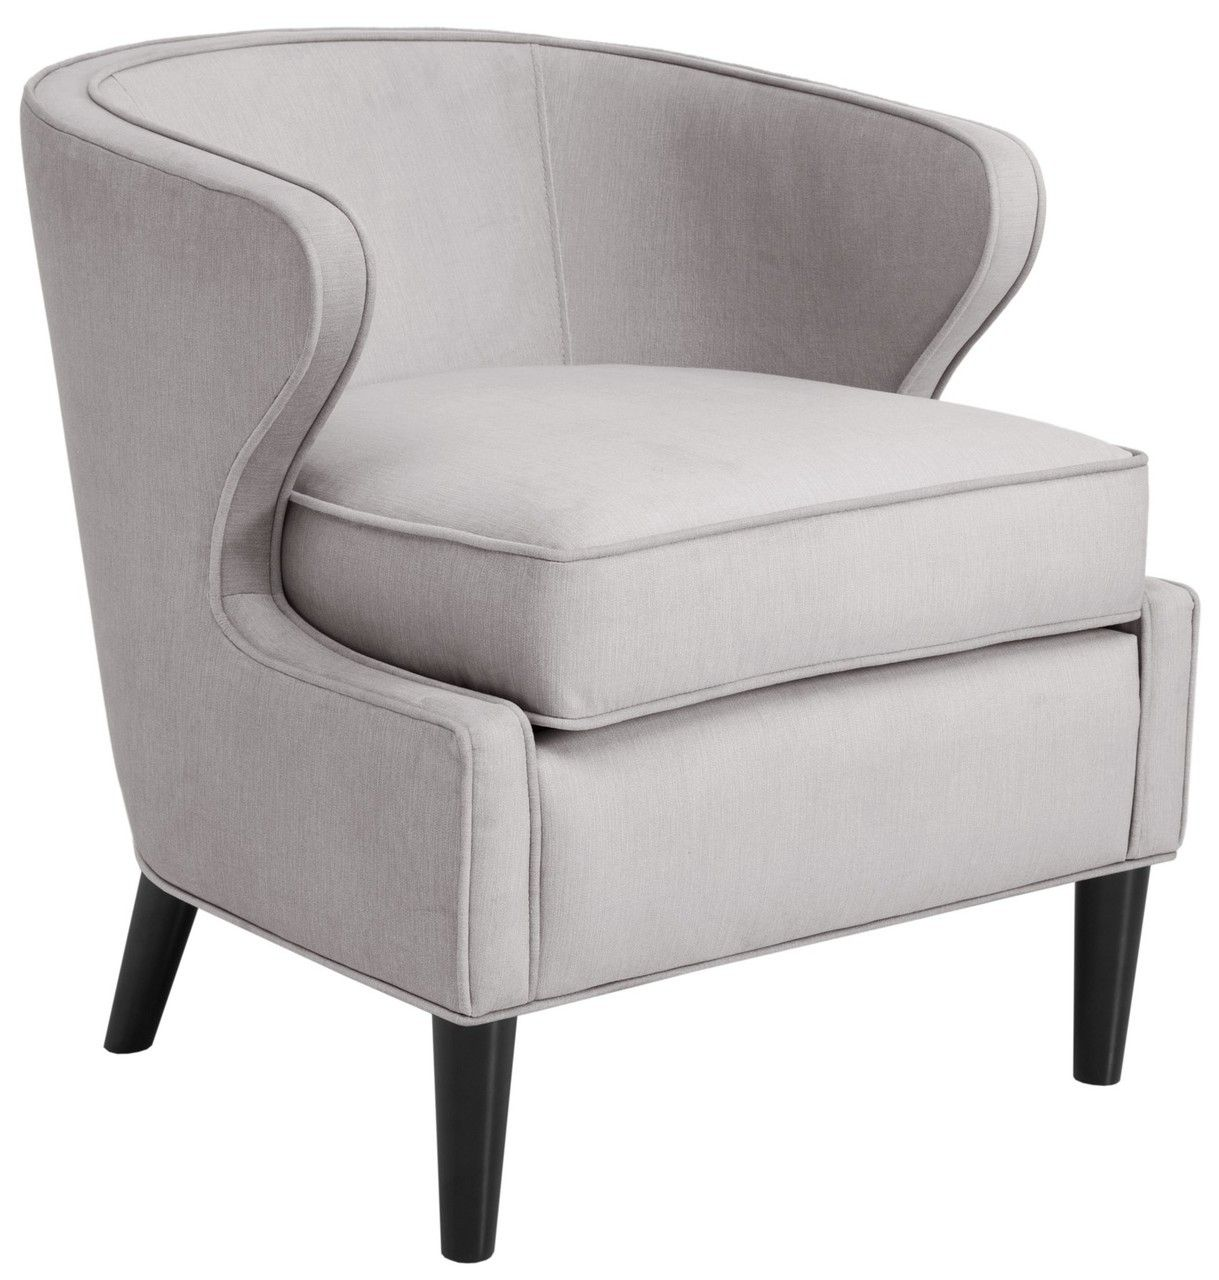 Lucca Rust Extended Arm Chair: Lucca Barrel Chair In Gray